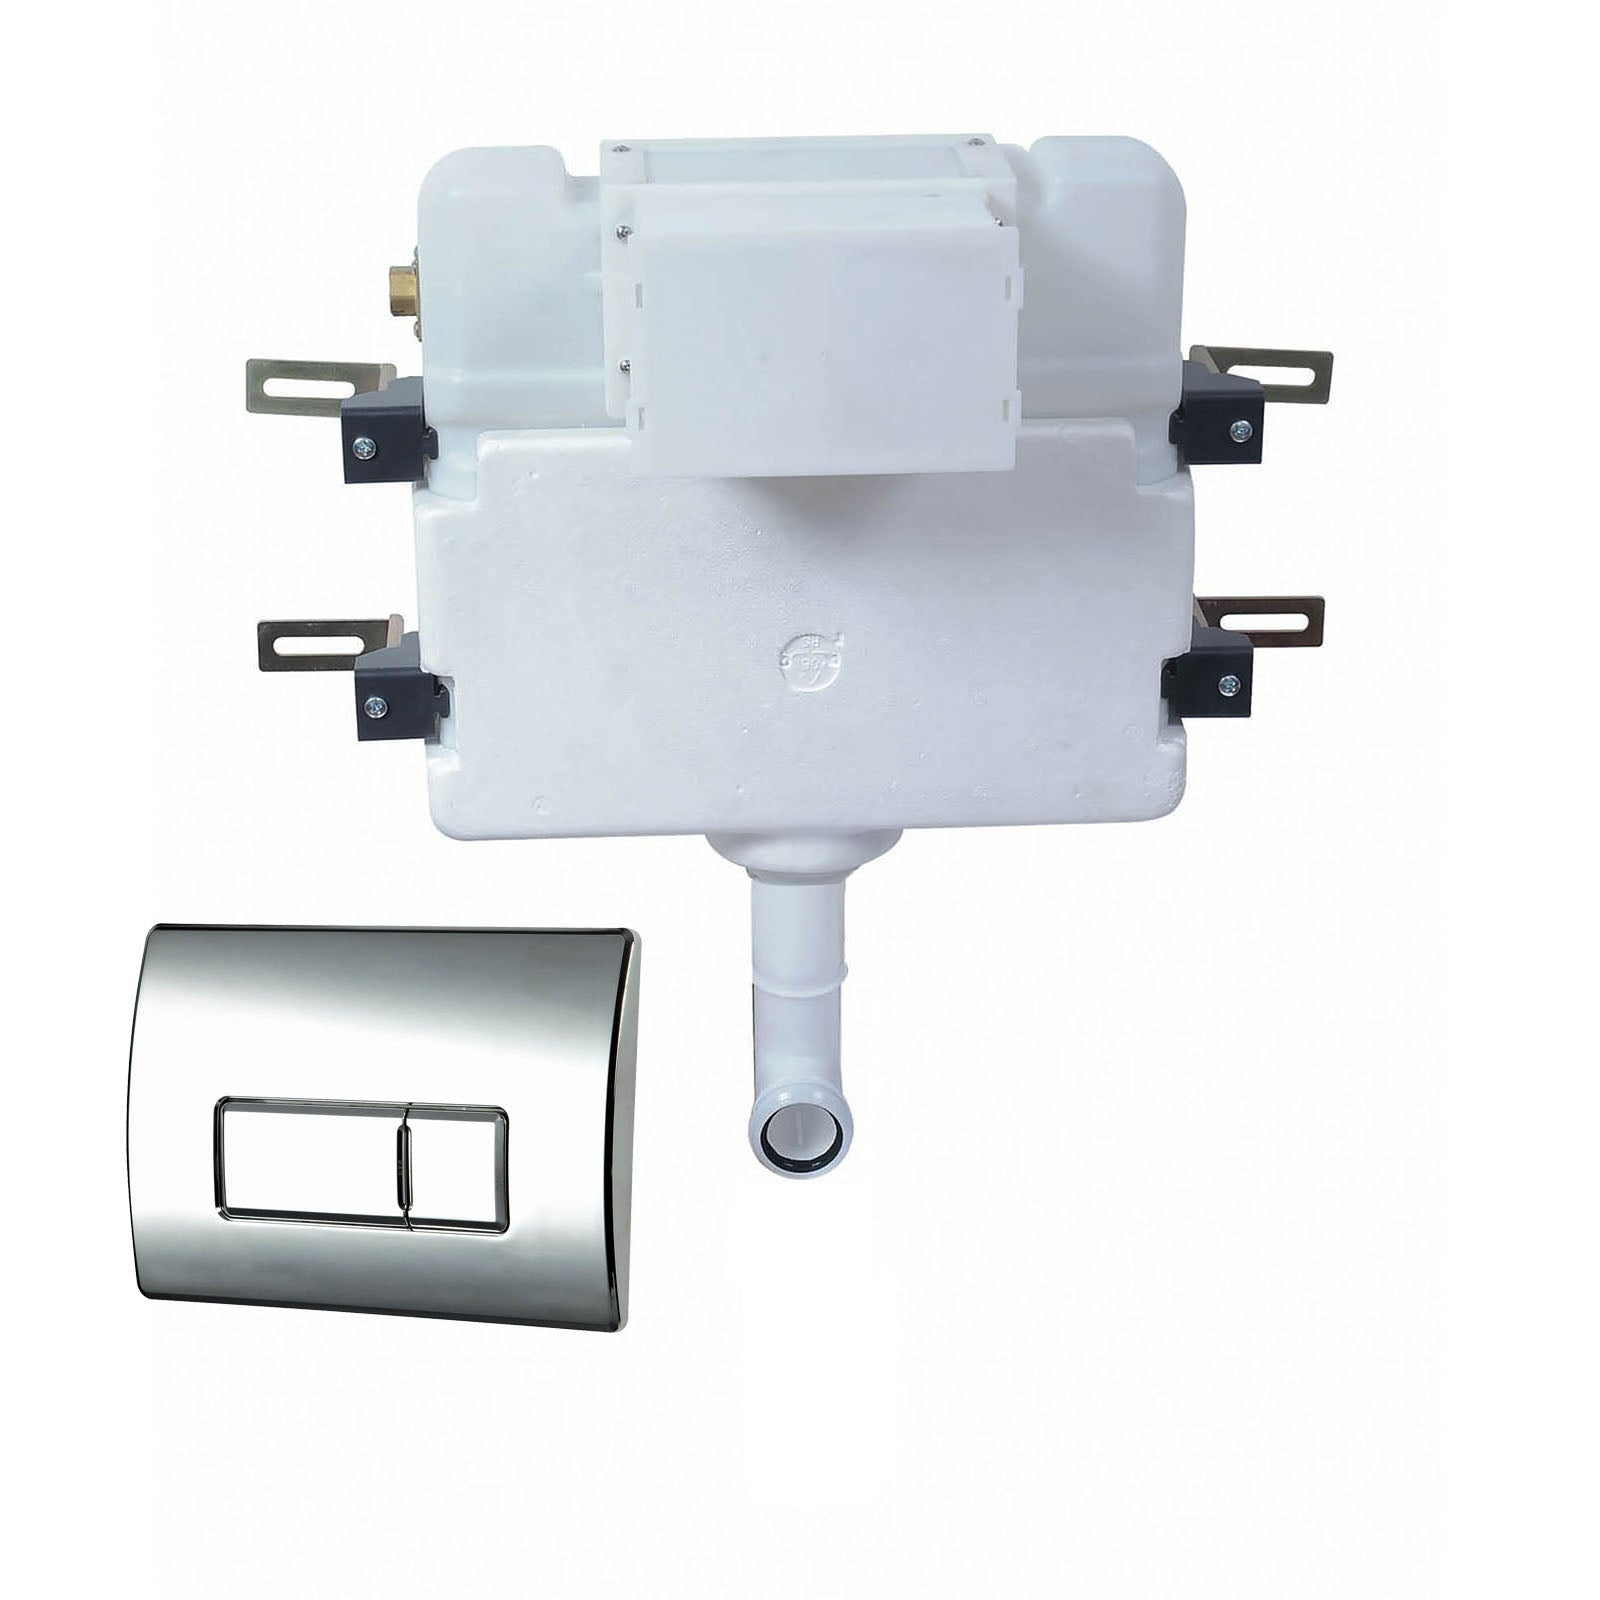 Phoenix Luxury Concealed Cistern With Pneumatic Square Flush Plate